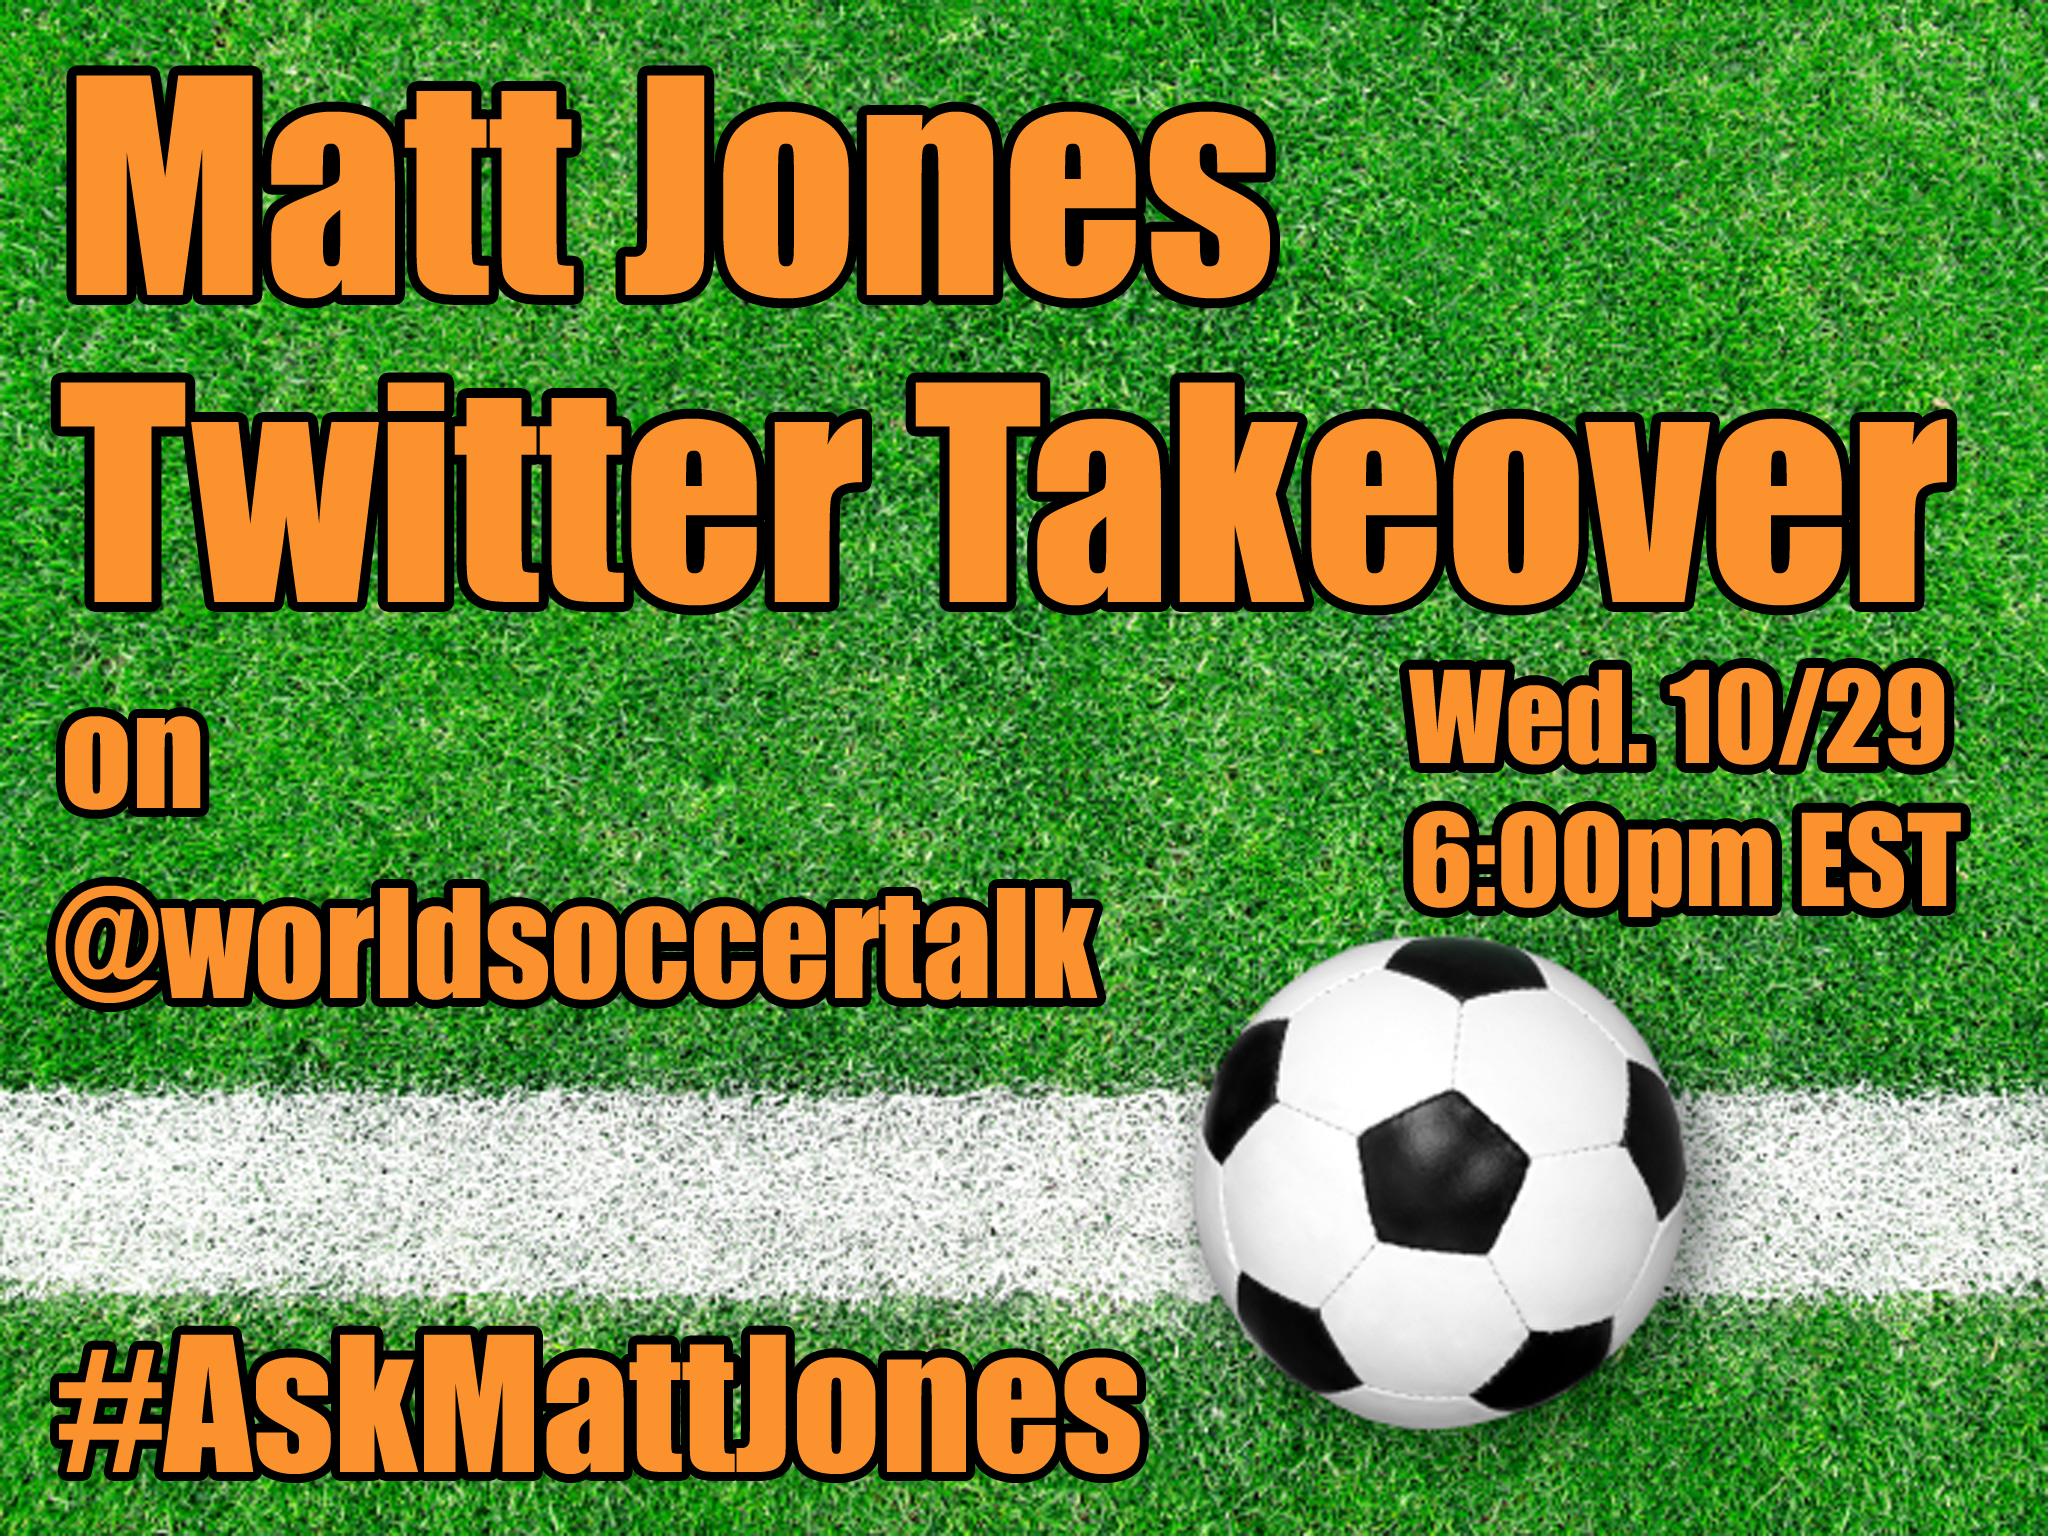 Matt Jones Takeover